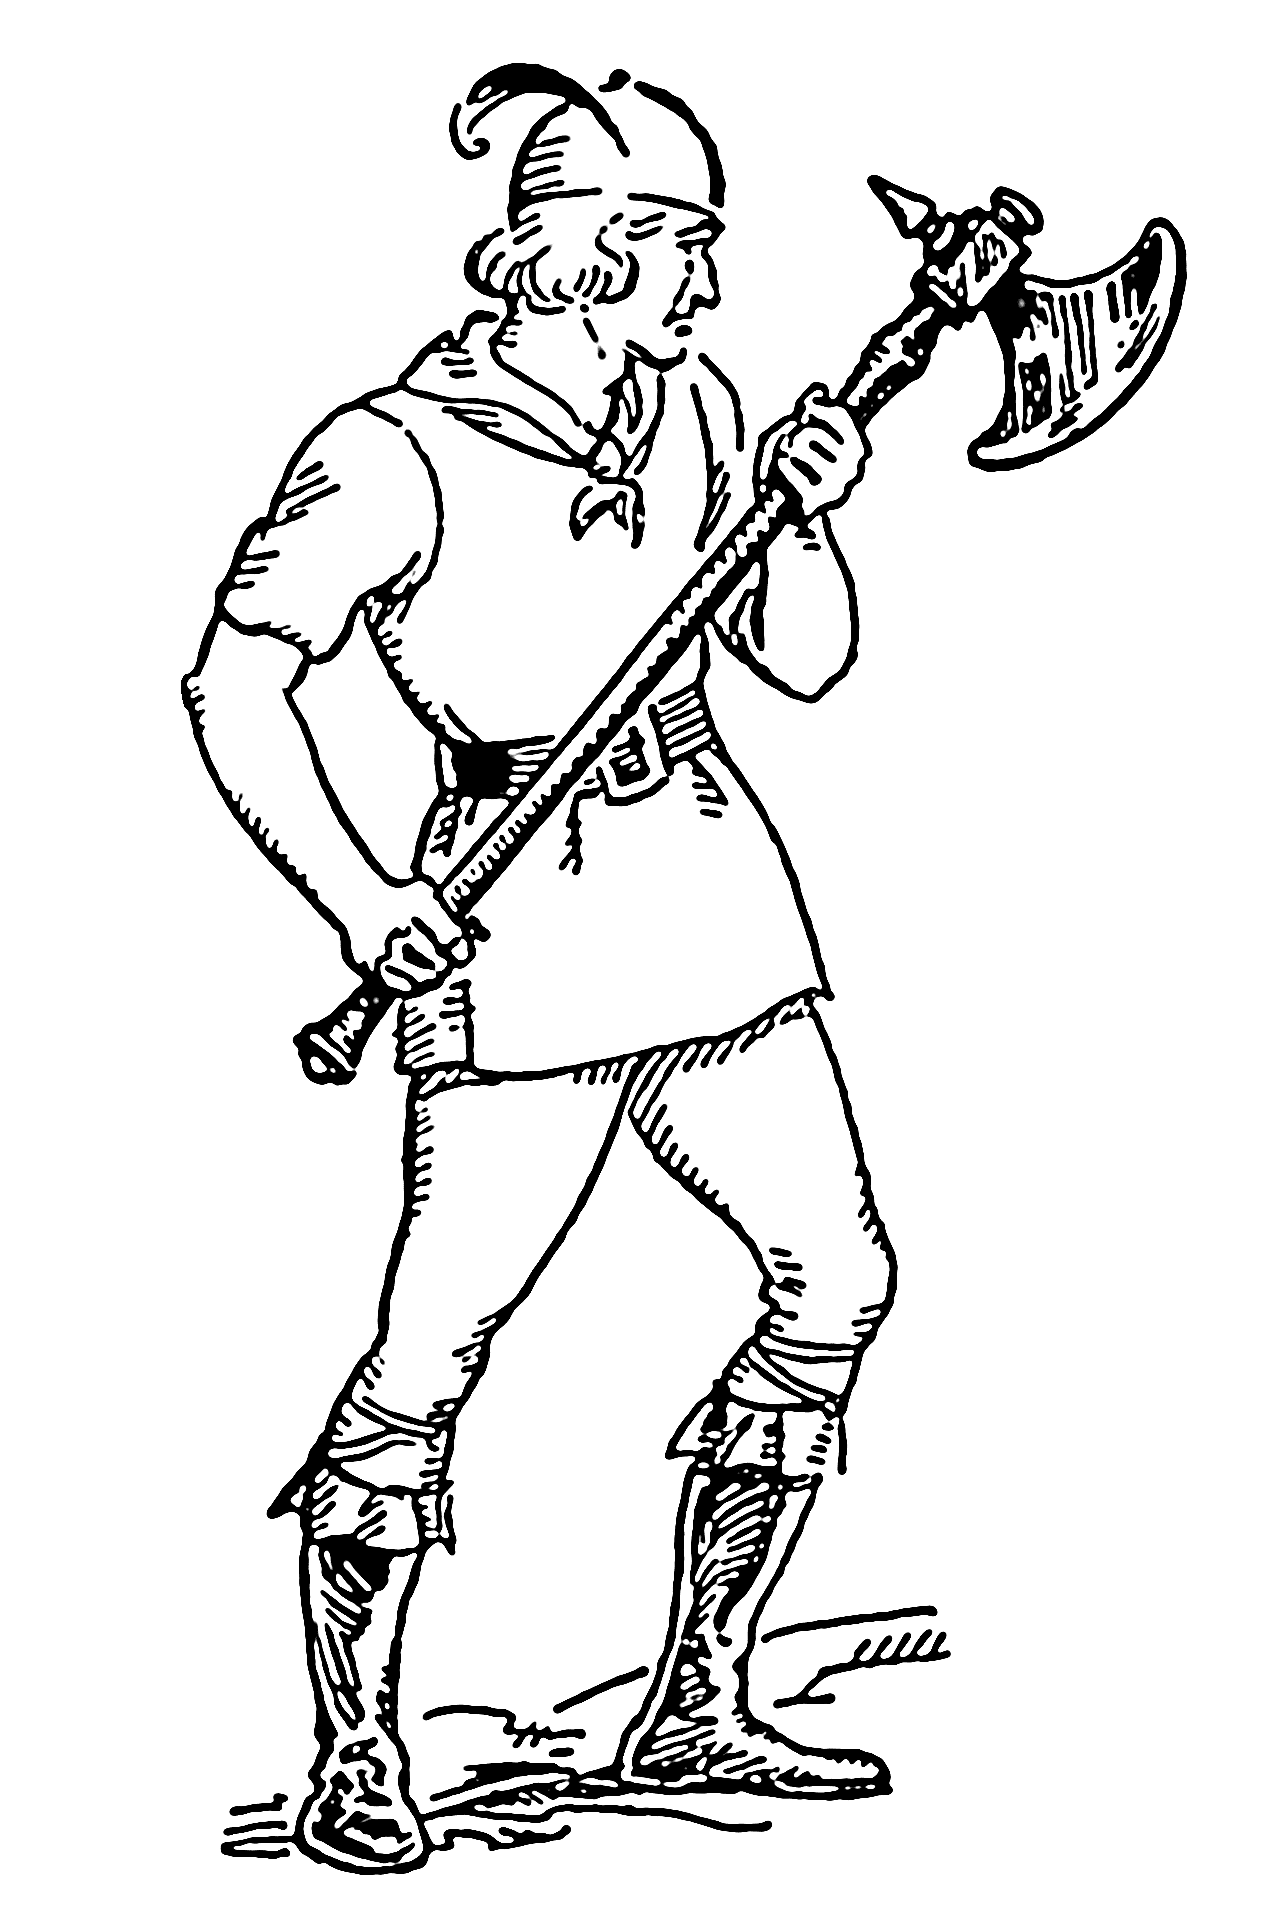 Medieval Battle Axe Drawing File:battle Axe 001.png